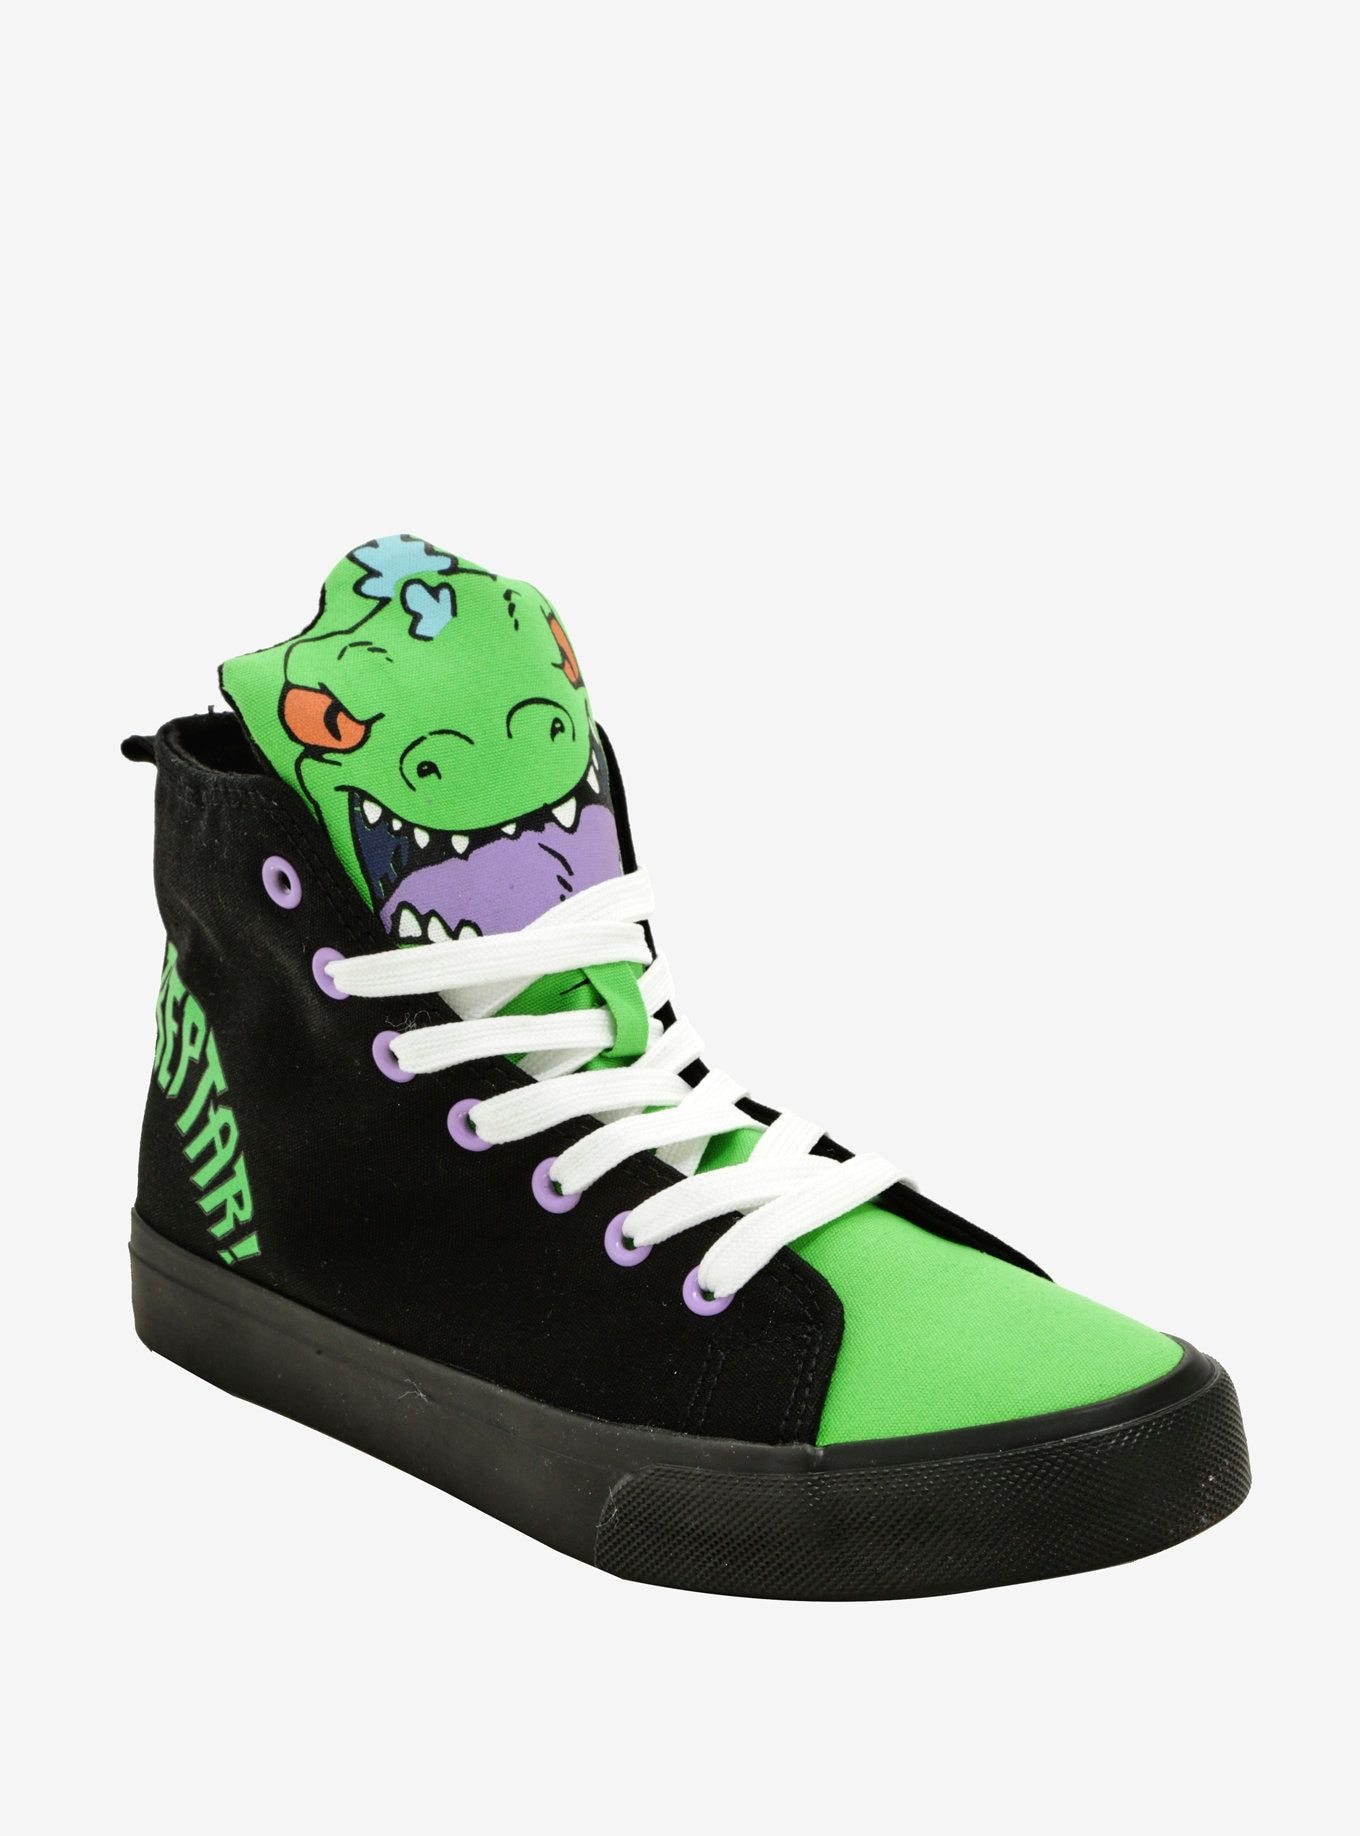 0222612fb2138 Rugrats Reptar Hi-Top Sneakers